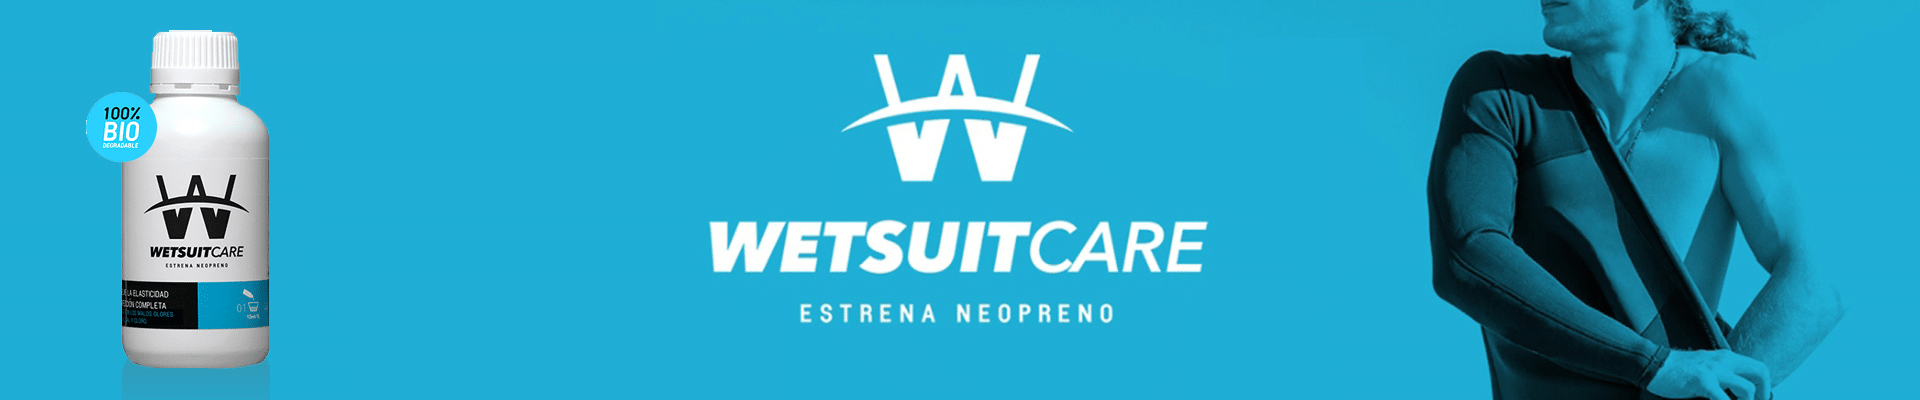 Banner WetSuitCare FKSS 2020 - Spain Series